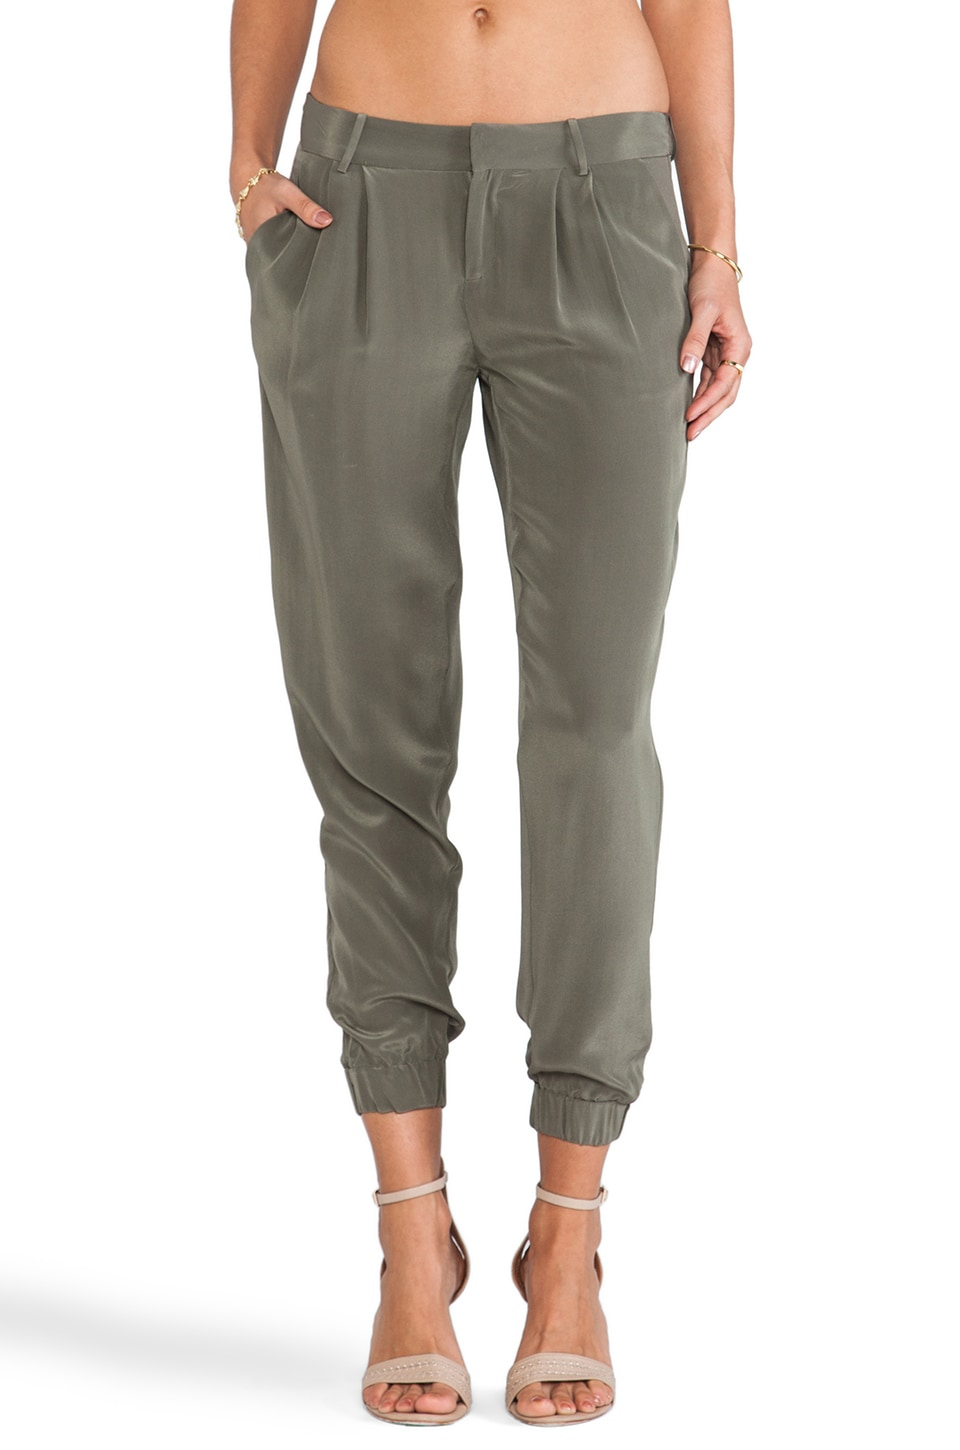 Joie Lidora Sandwashed Pants in Fatigue